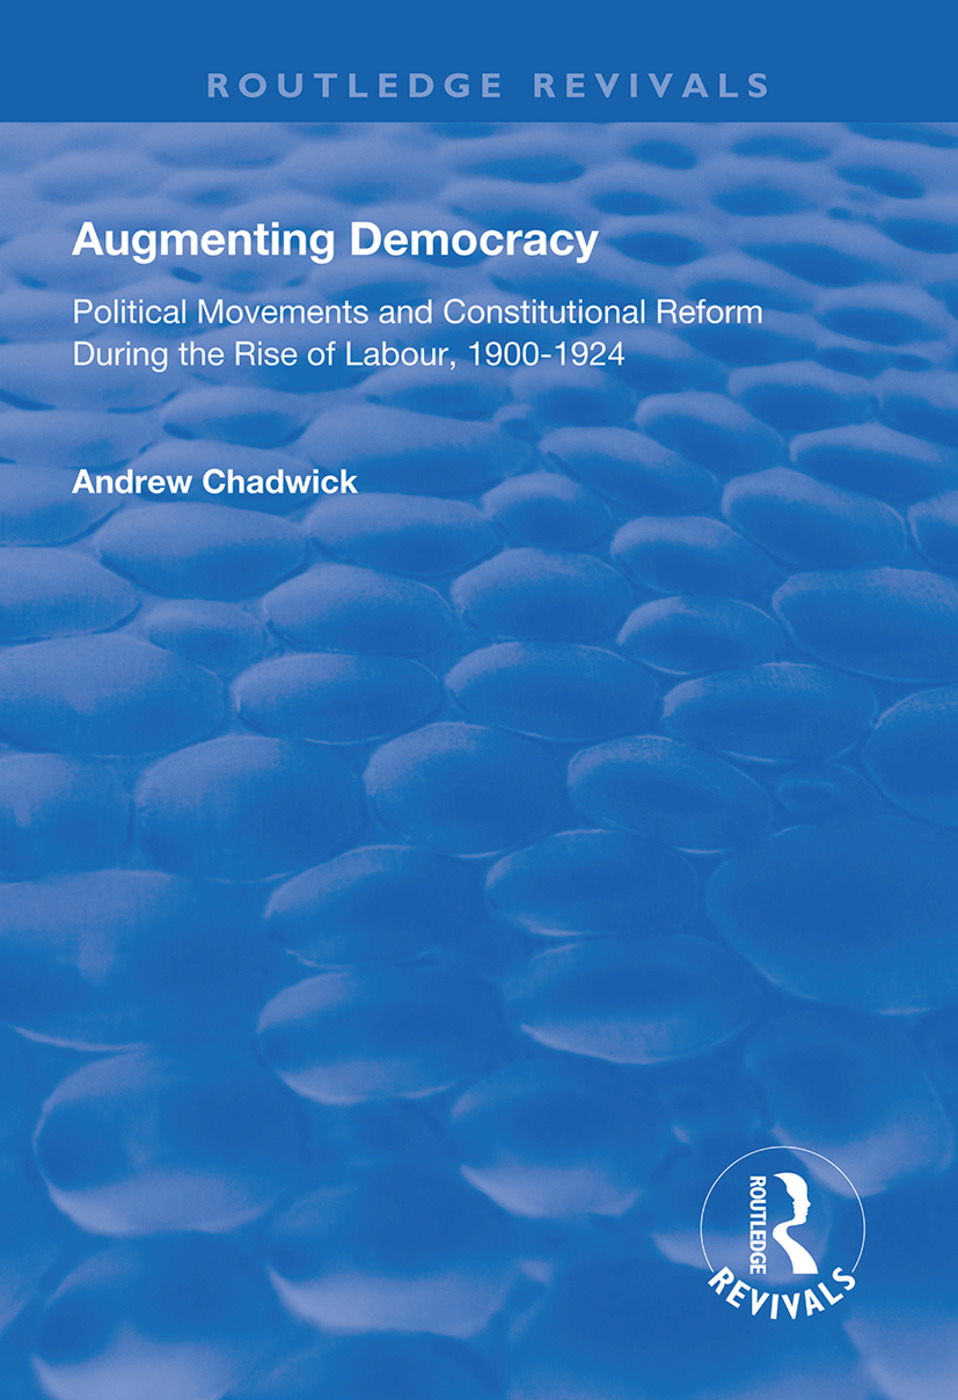 Augmenting Democracy: Political Movements and Constitutional Reform During the Rise of Labour, 1900-1924 book cover